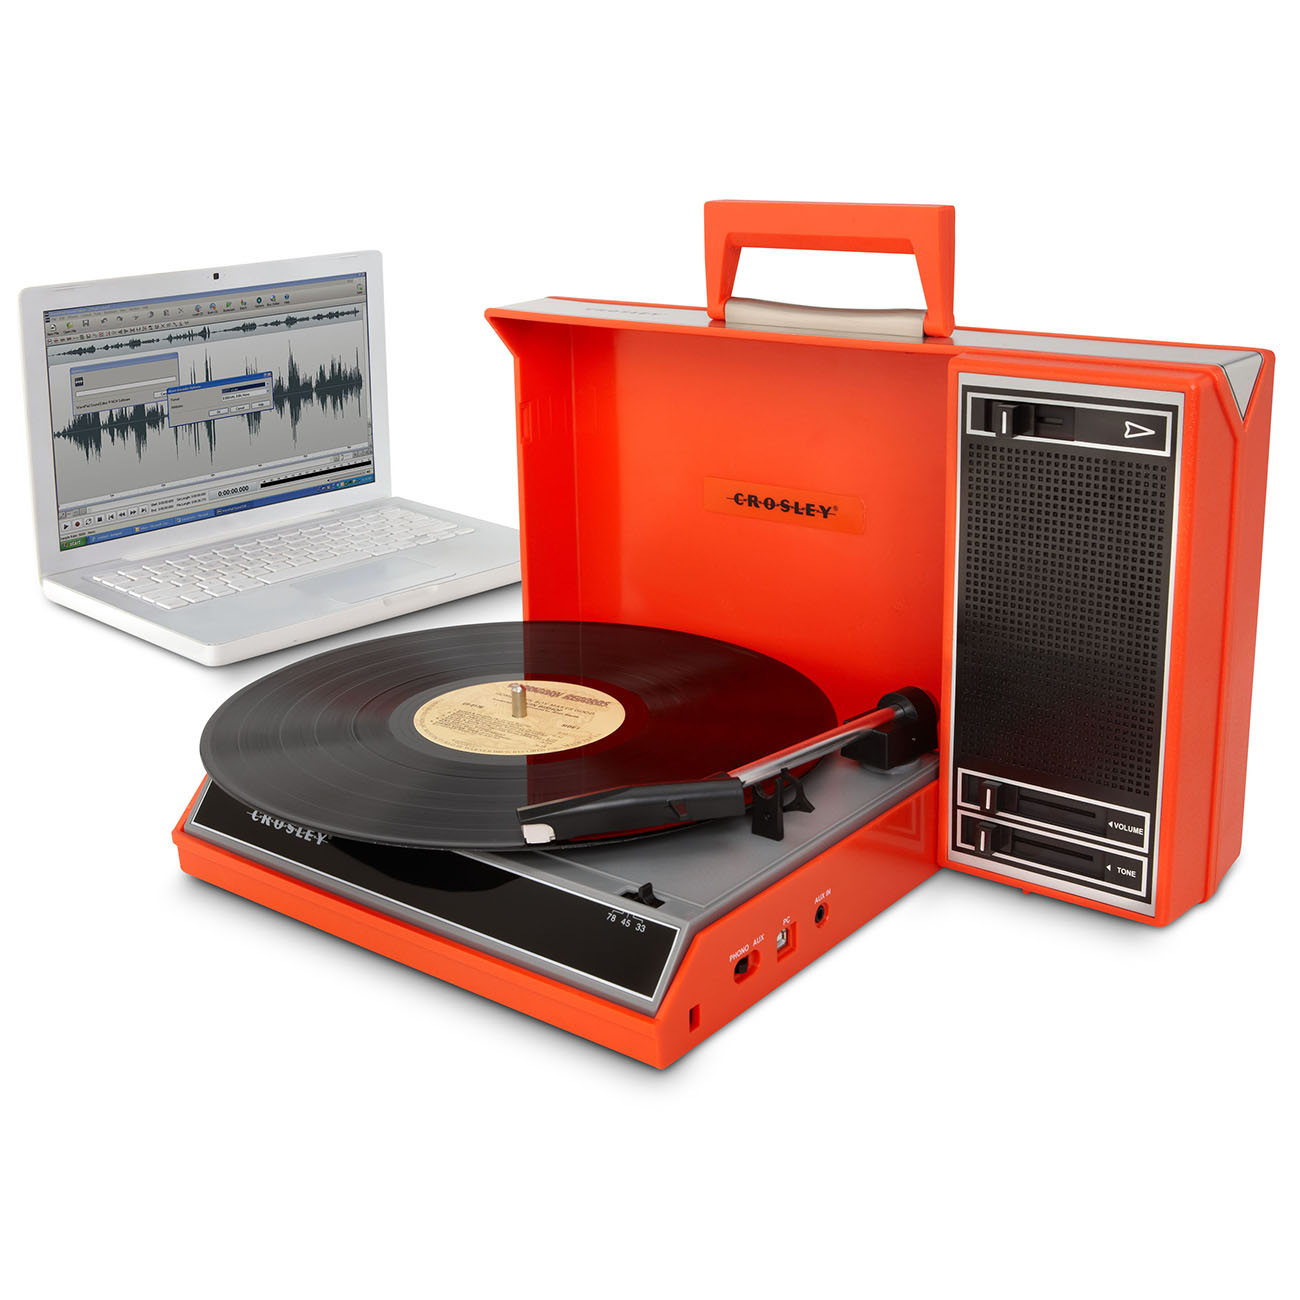 Crosley Spinnerette Portable USB Record Player - Red